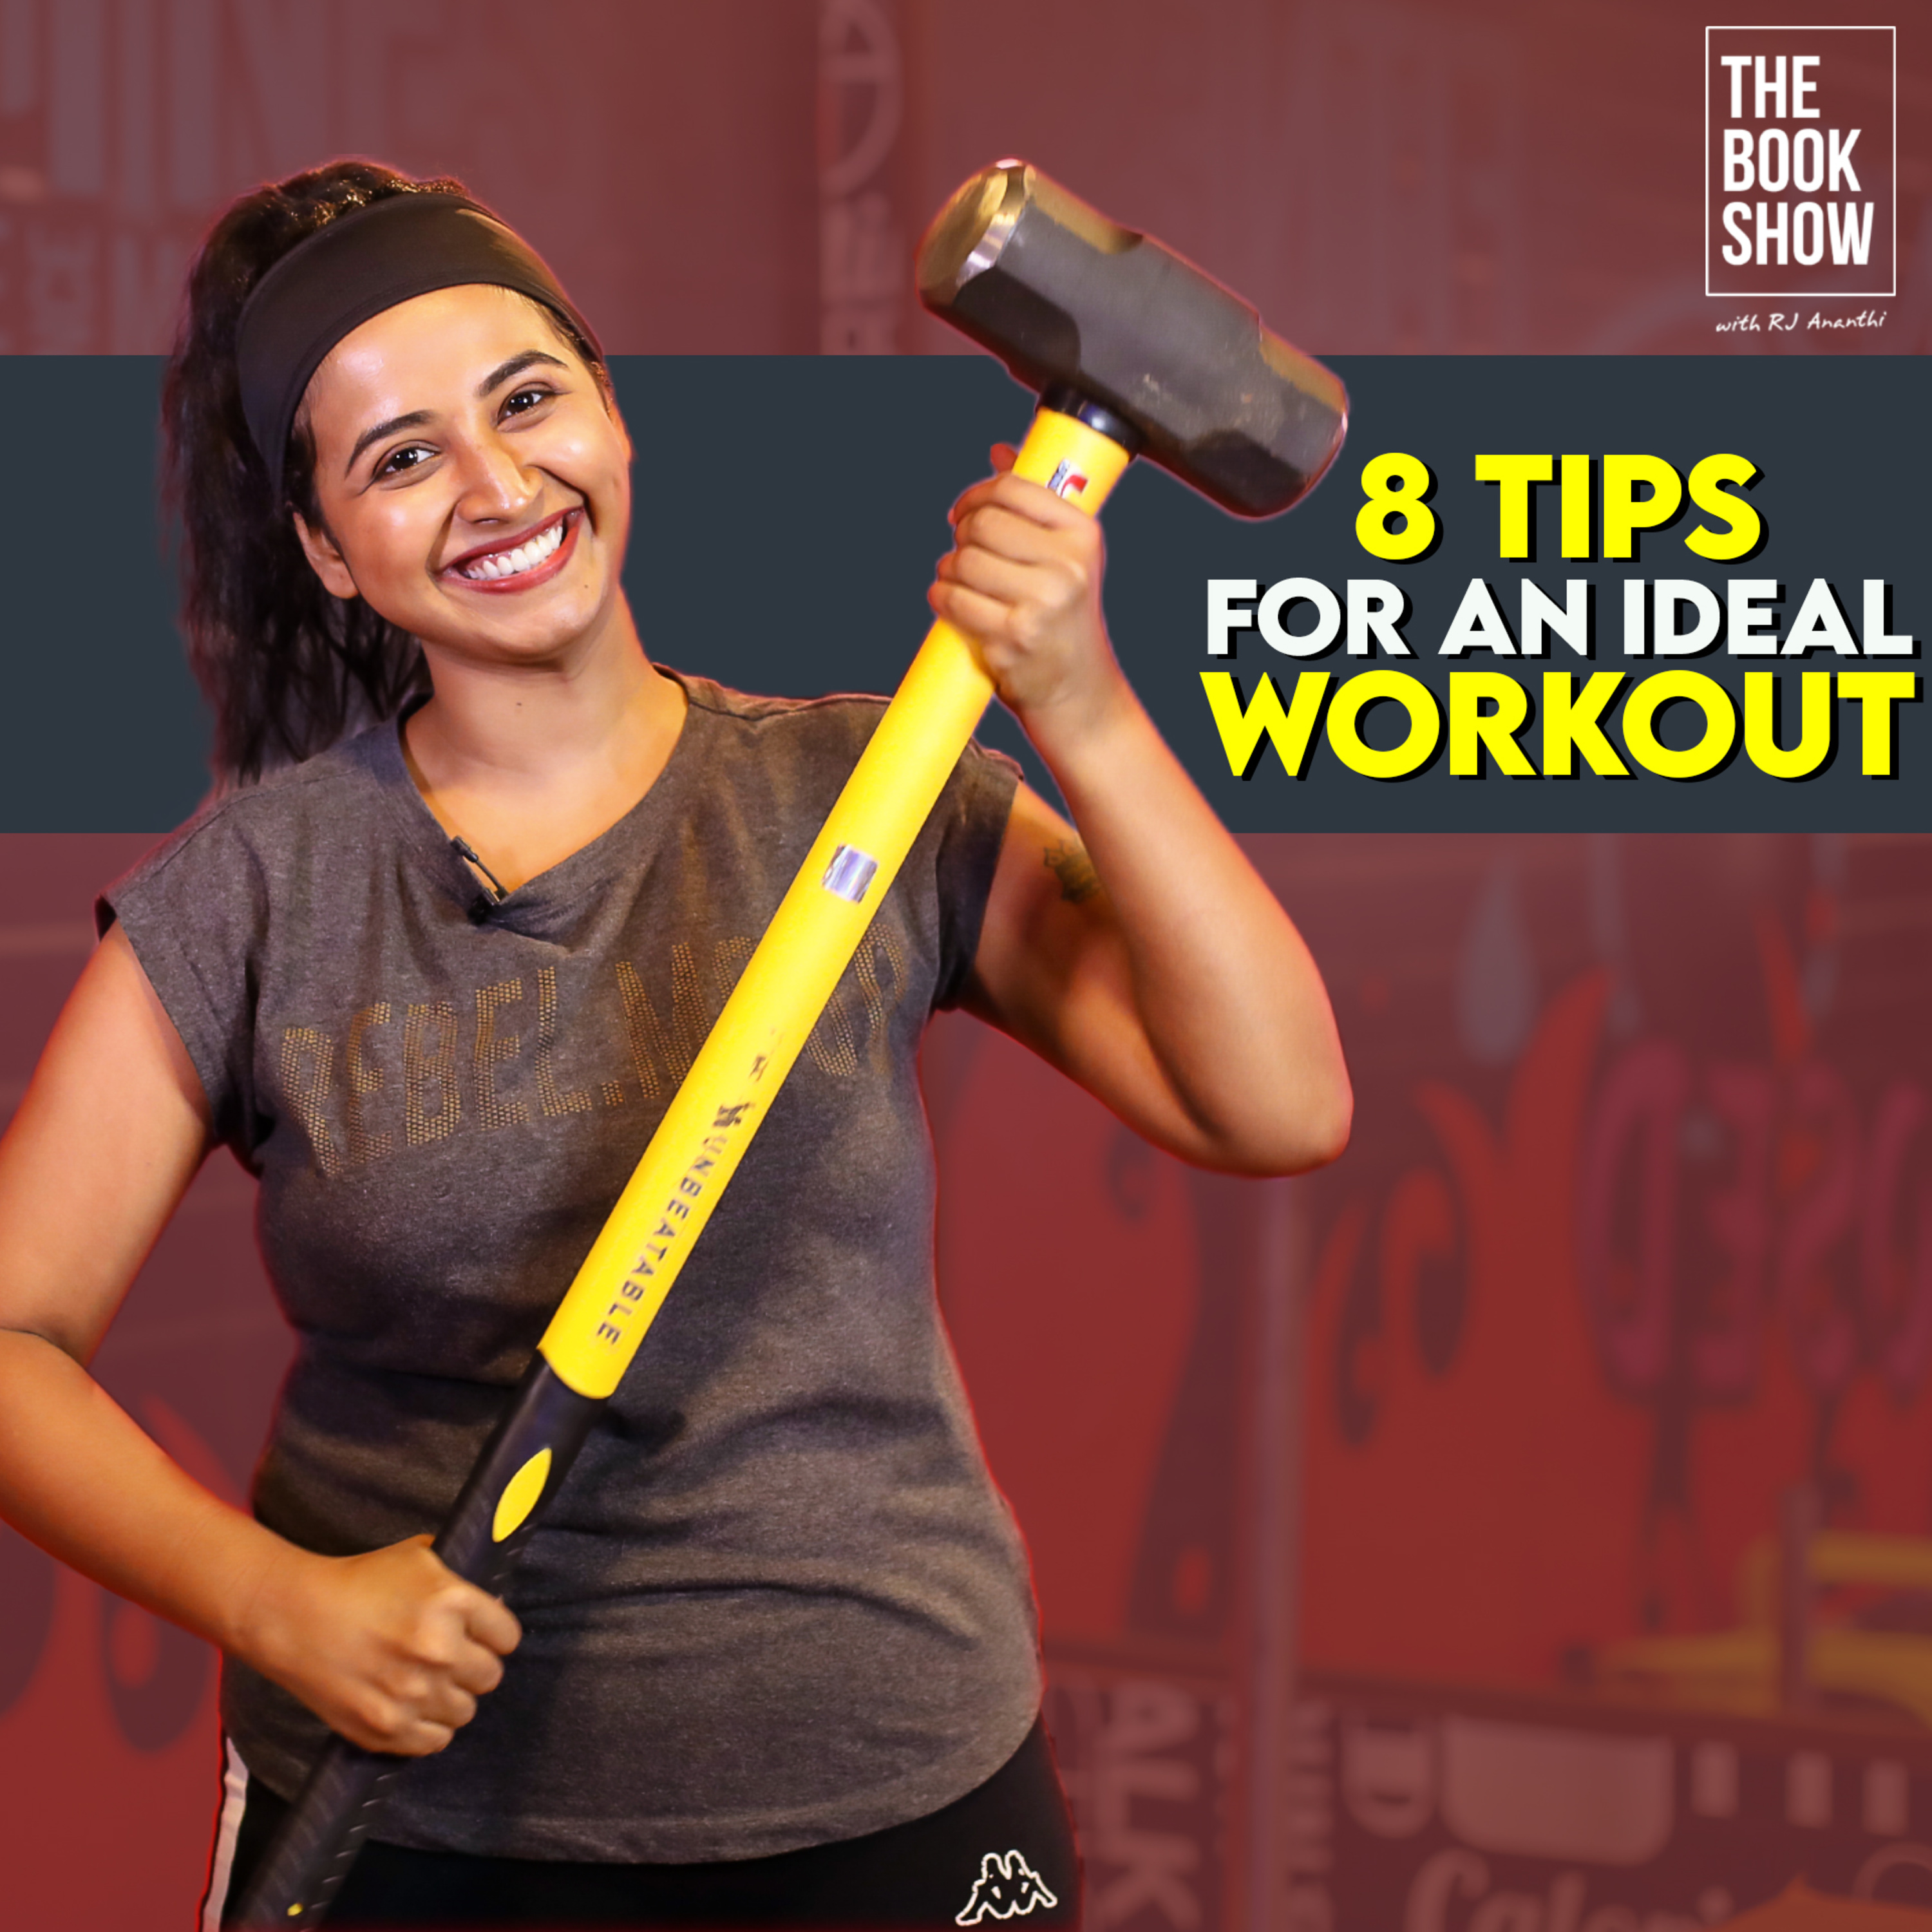 8 Tips For an Ideal Workout   The Book Show ft. RJ Ananthi   Book Review